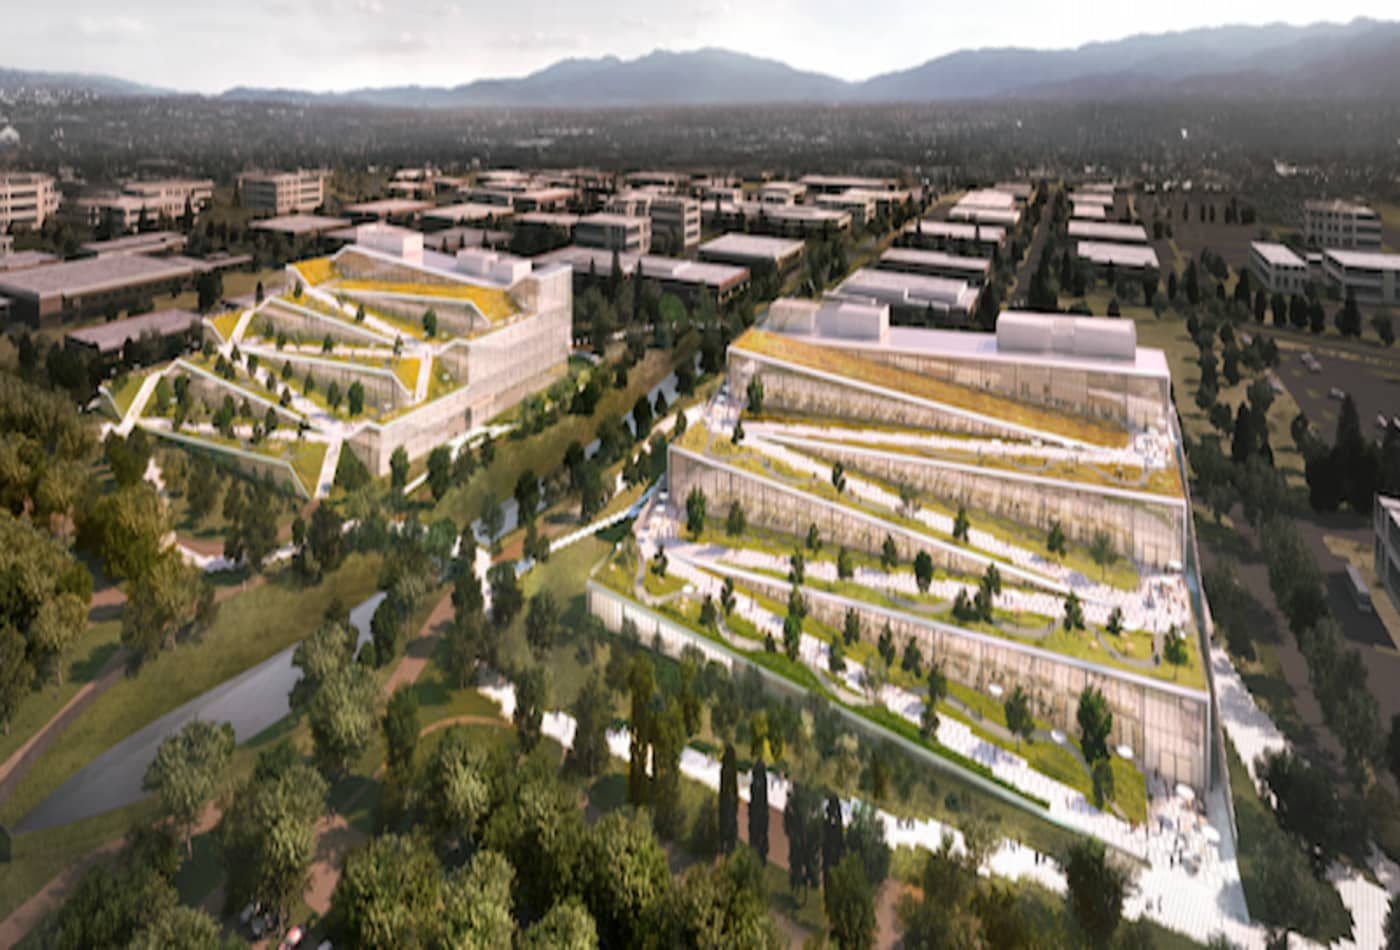 Here's a look at the massive new campus Google wants to build a few miles from its headquarters